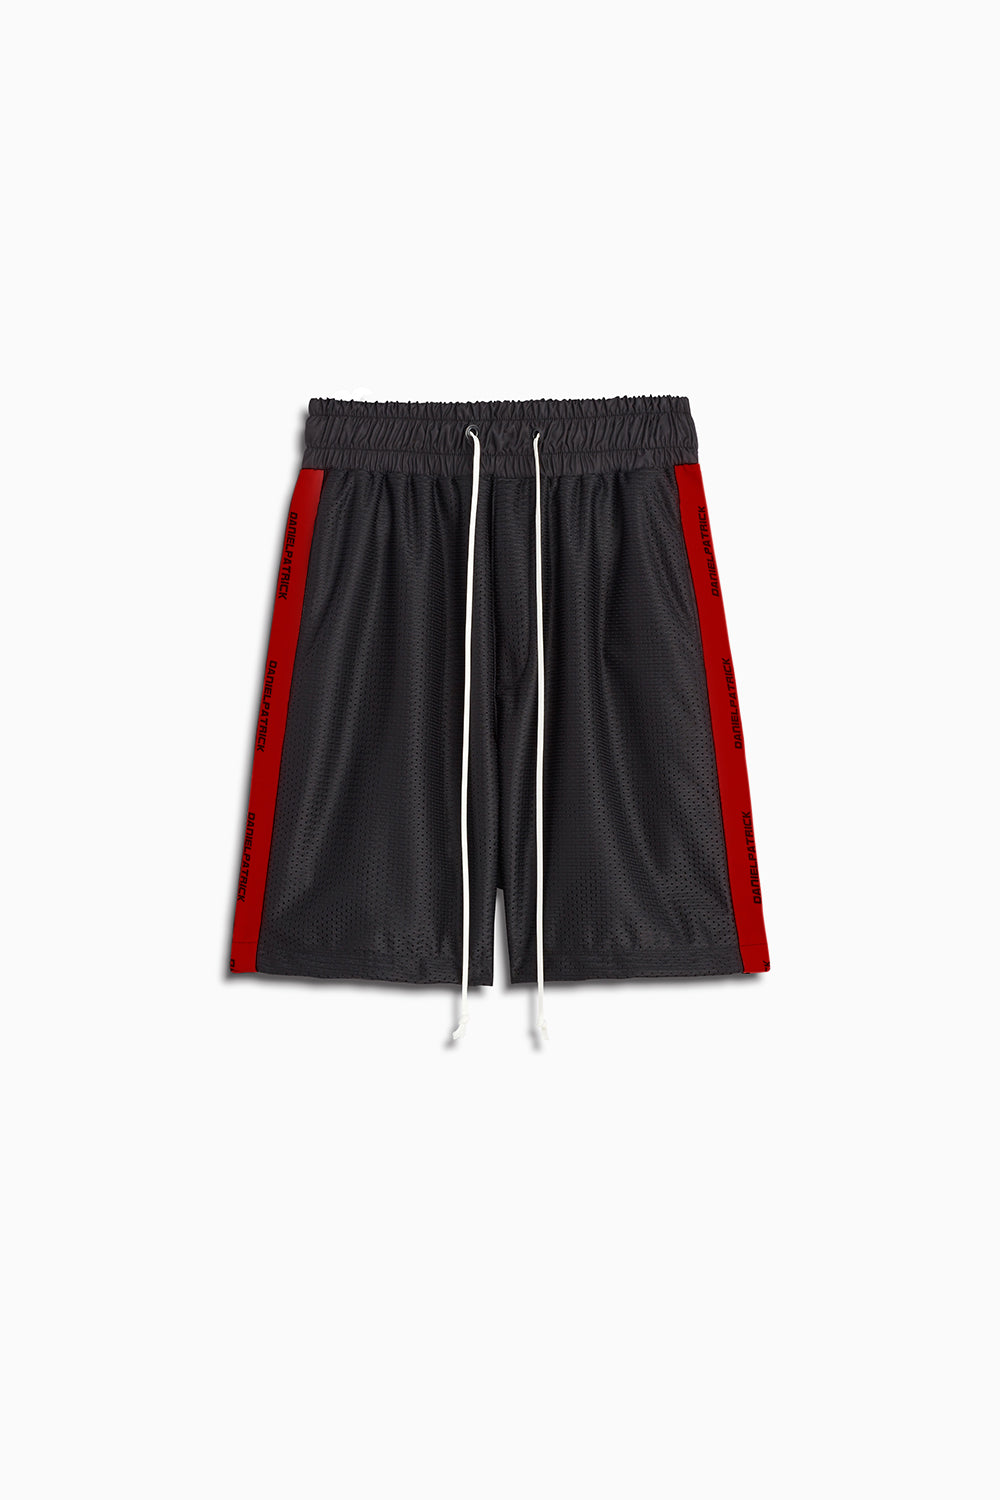 mesh gym short in black/red by daniel patrick